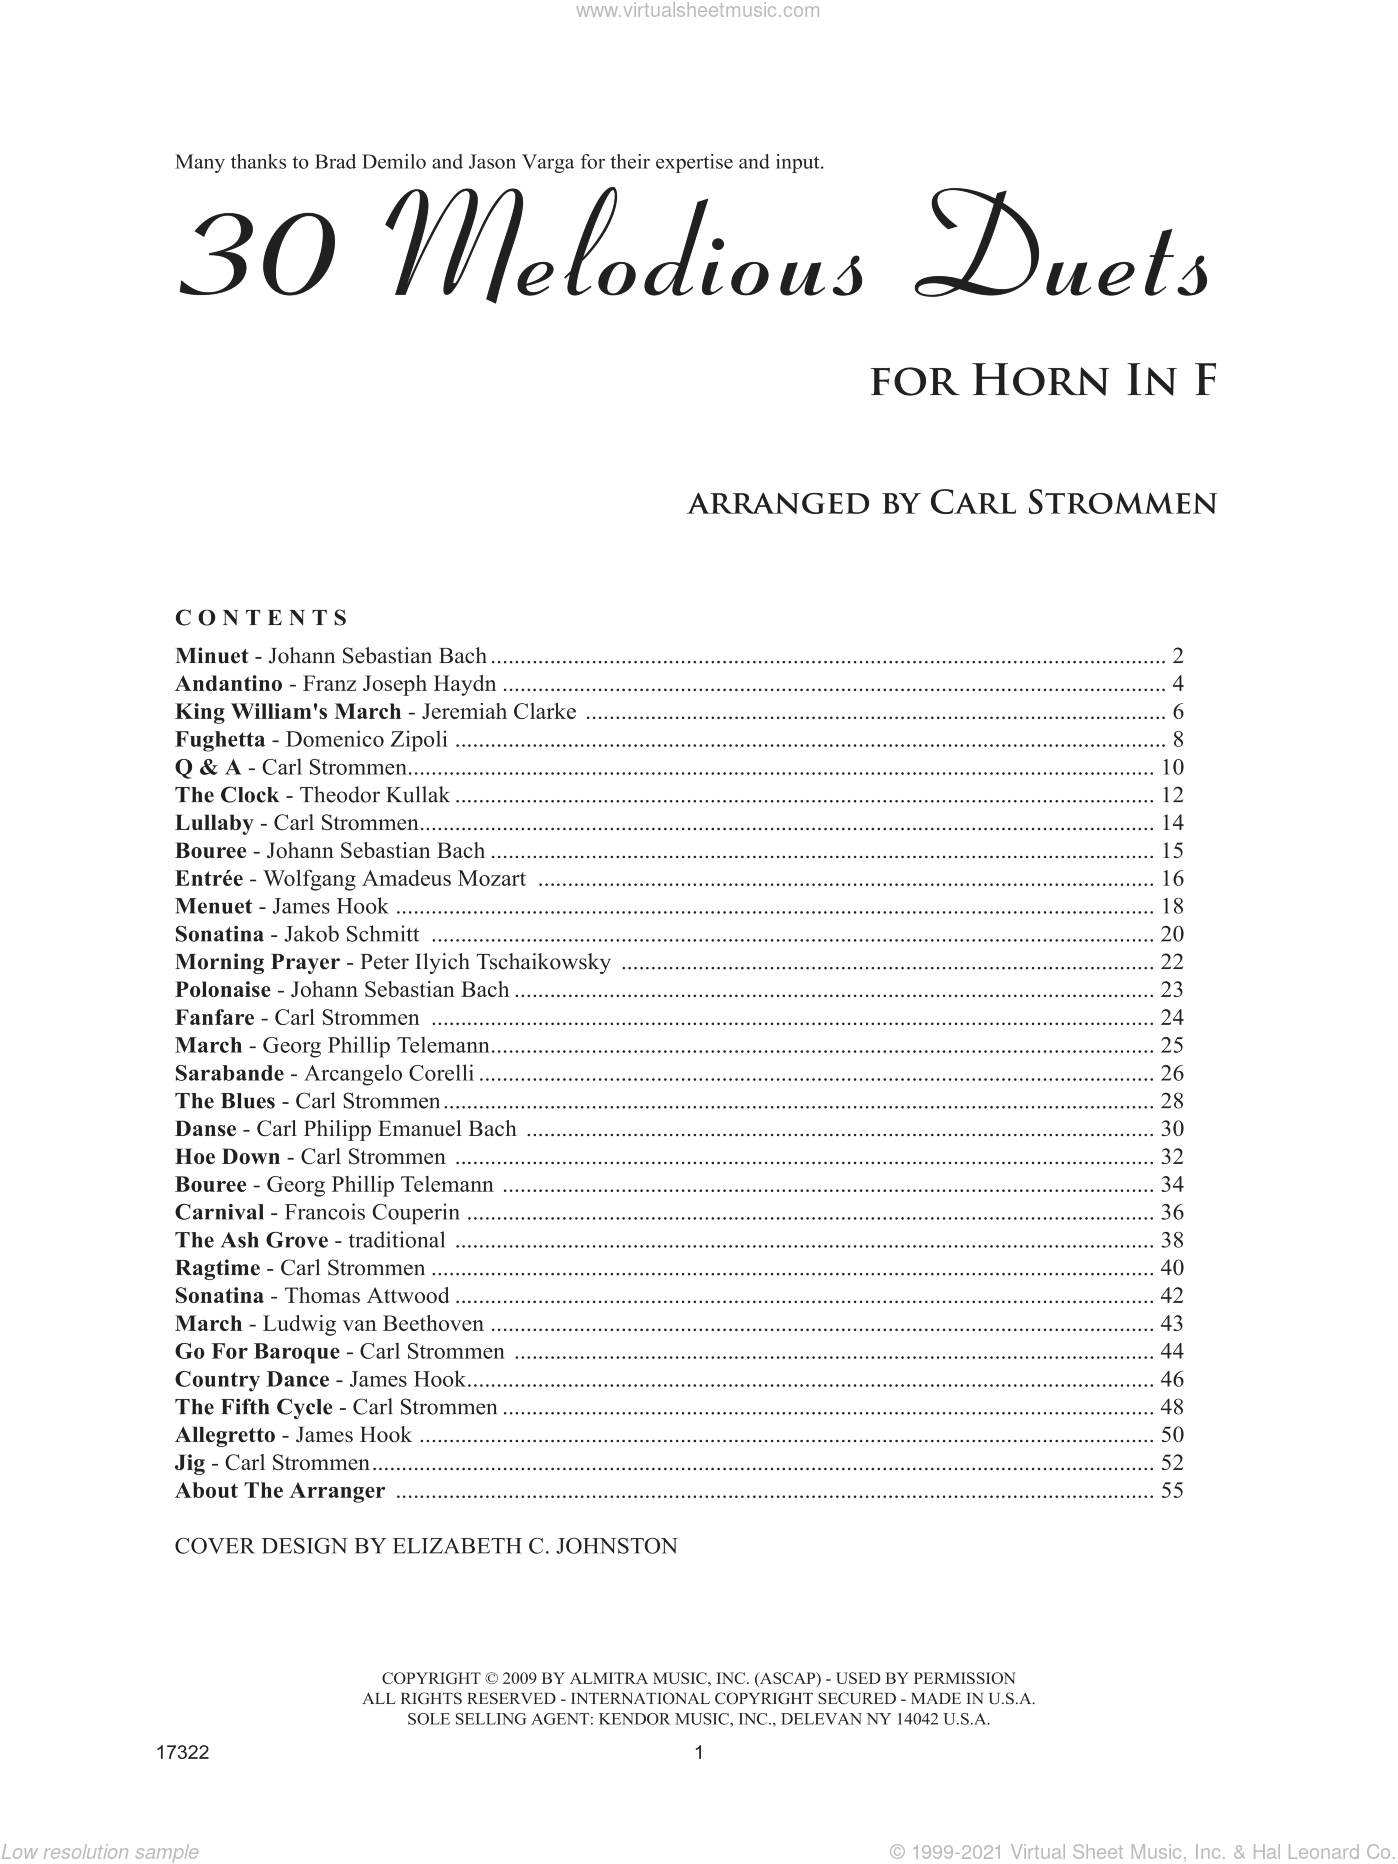 30 Melodious Duets sheet music for two horns by Carl Strommen, classical score, intermediate duet